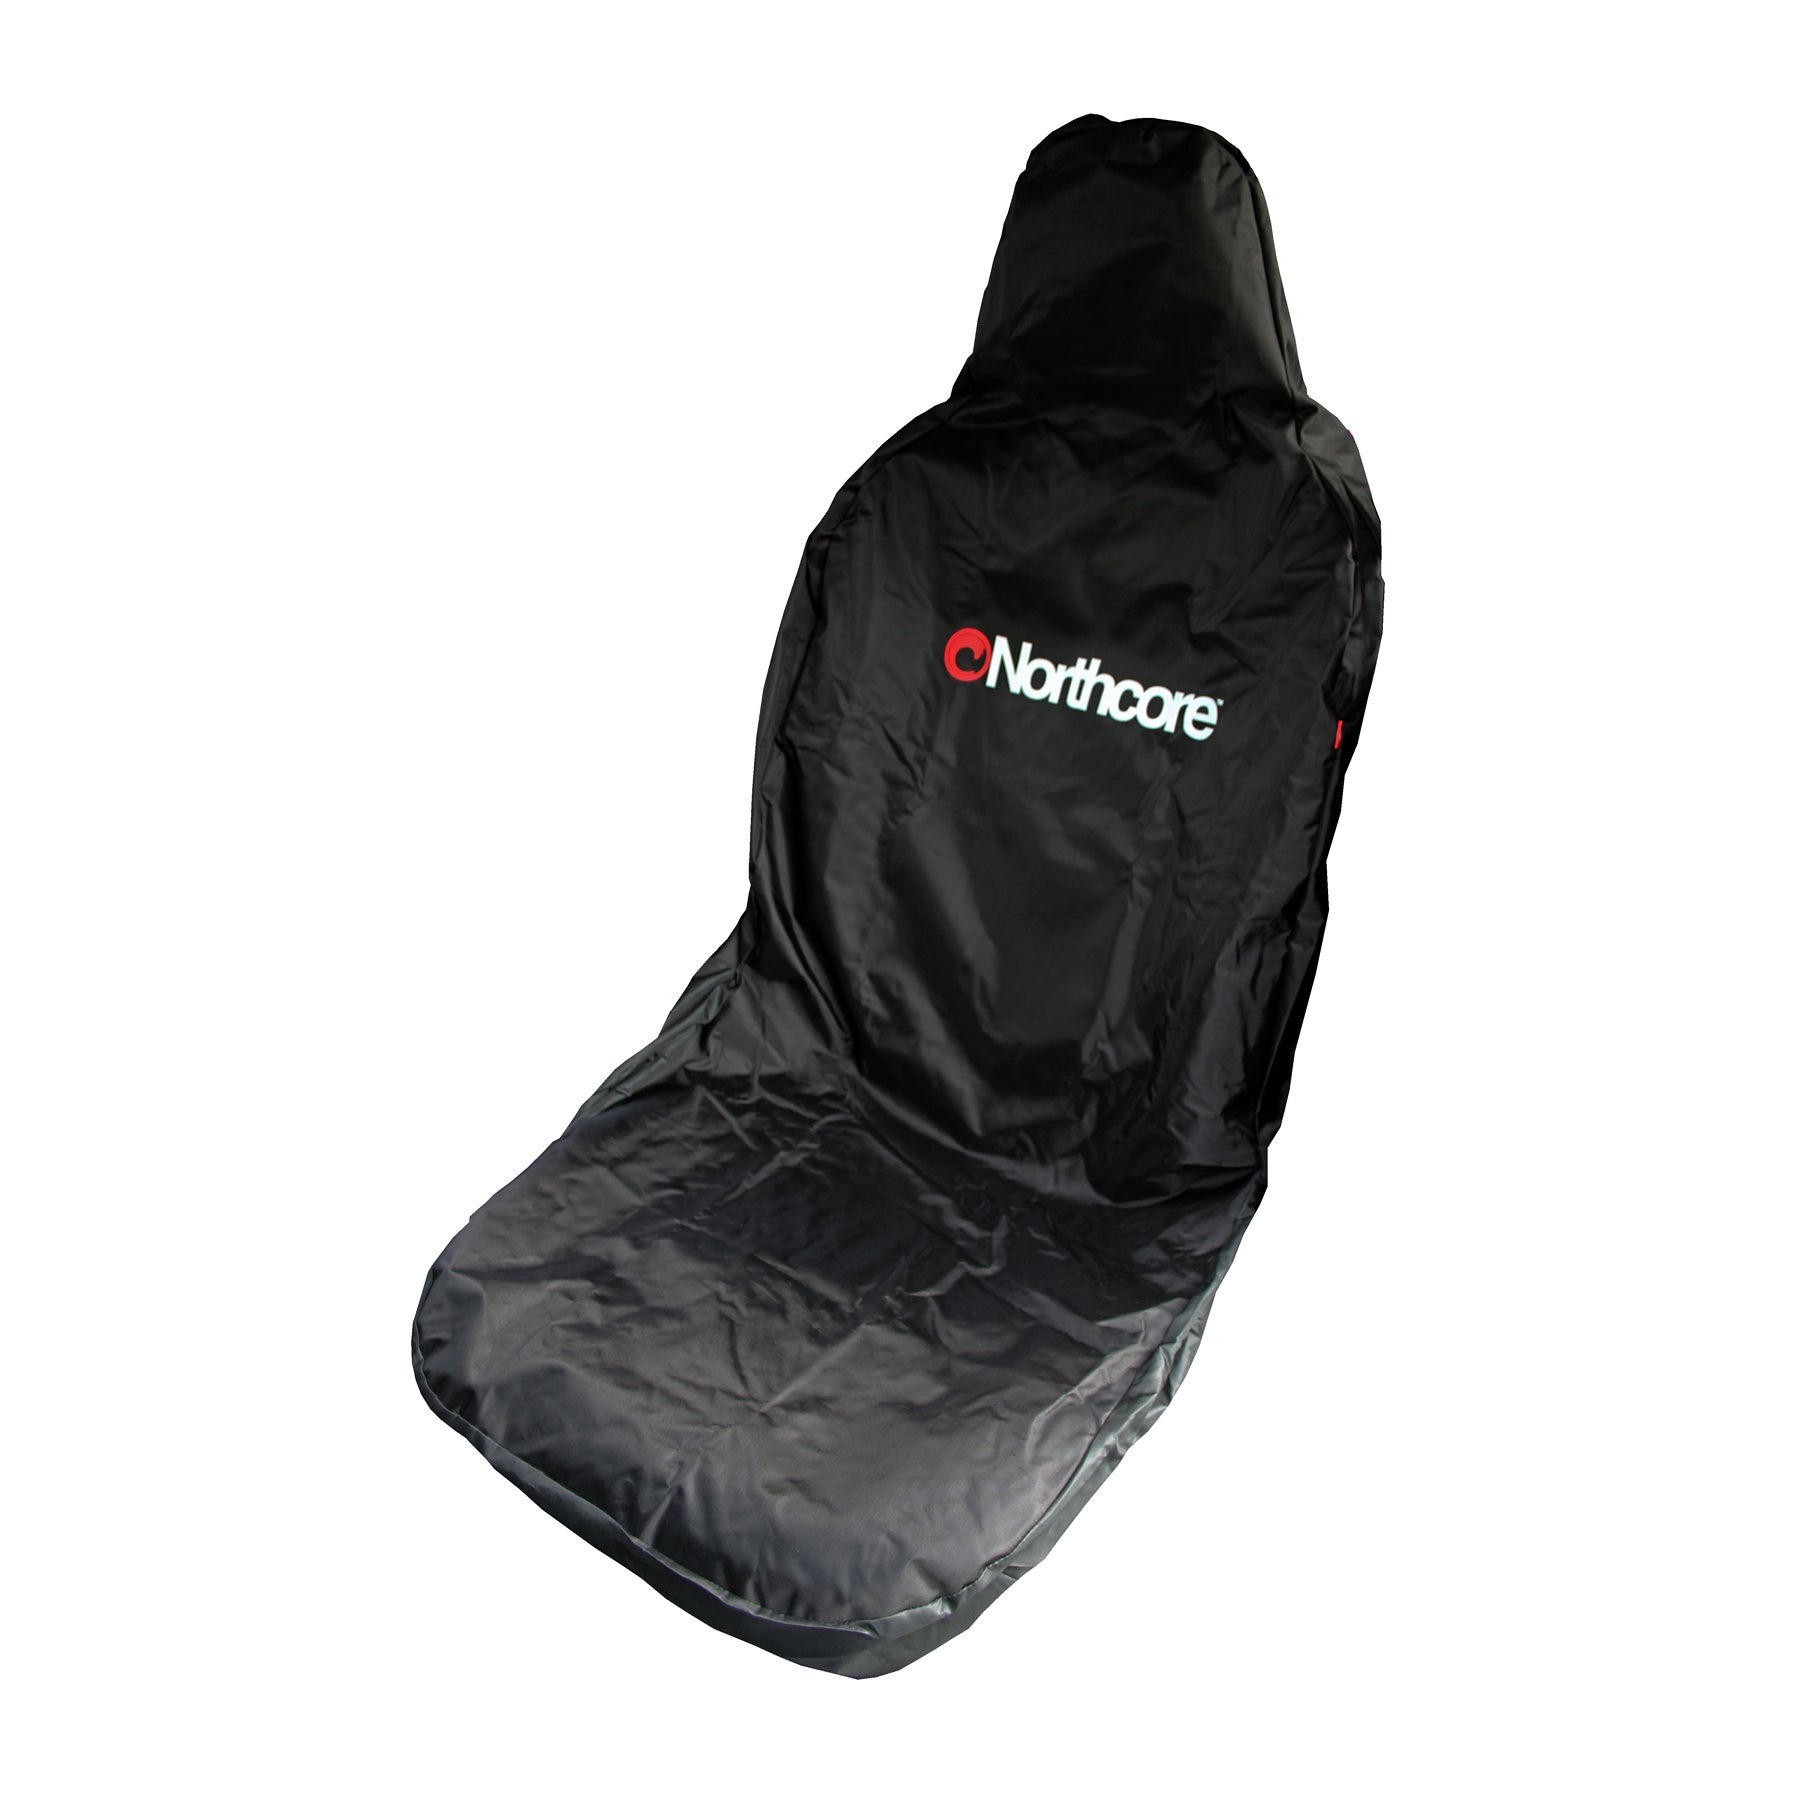 Northcore Waterproof Car Seat Cover - Black